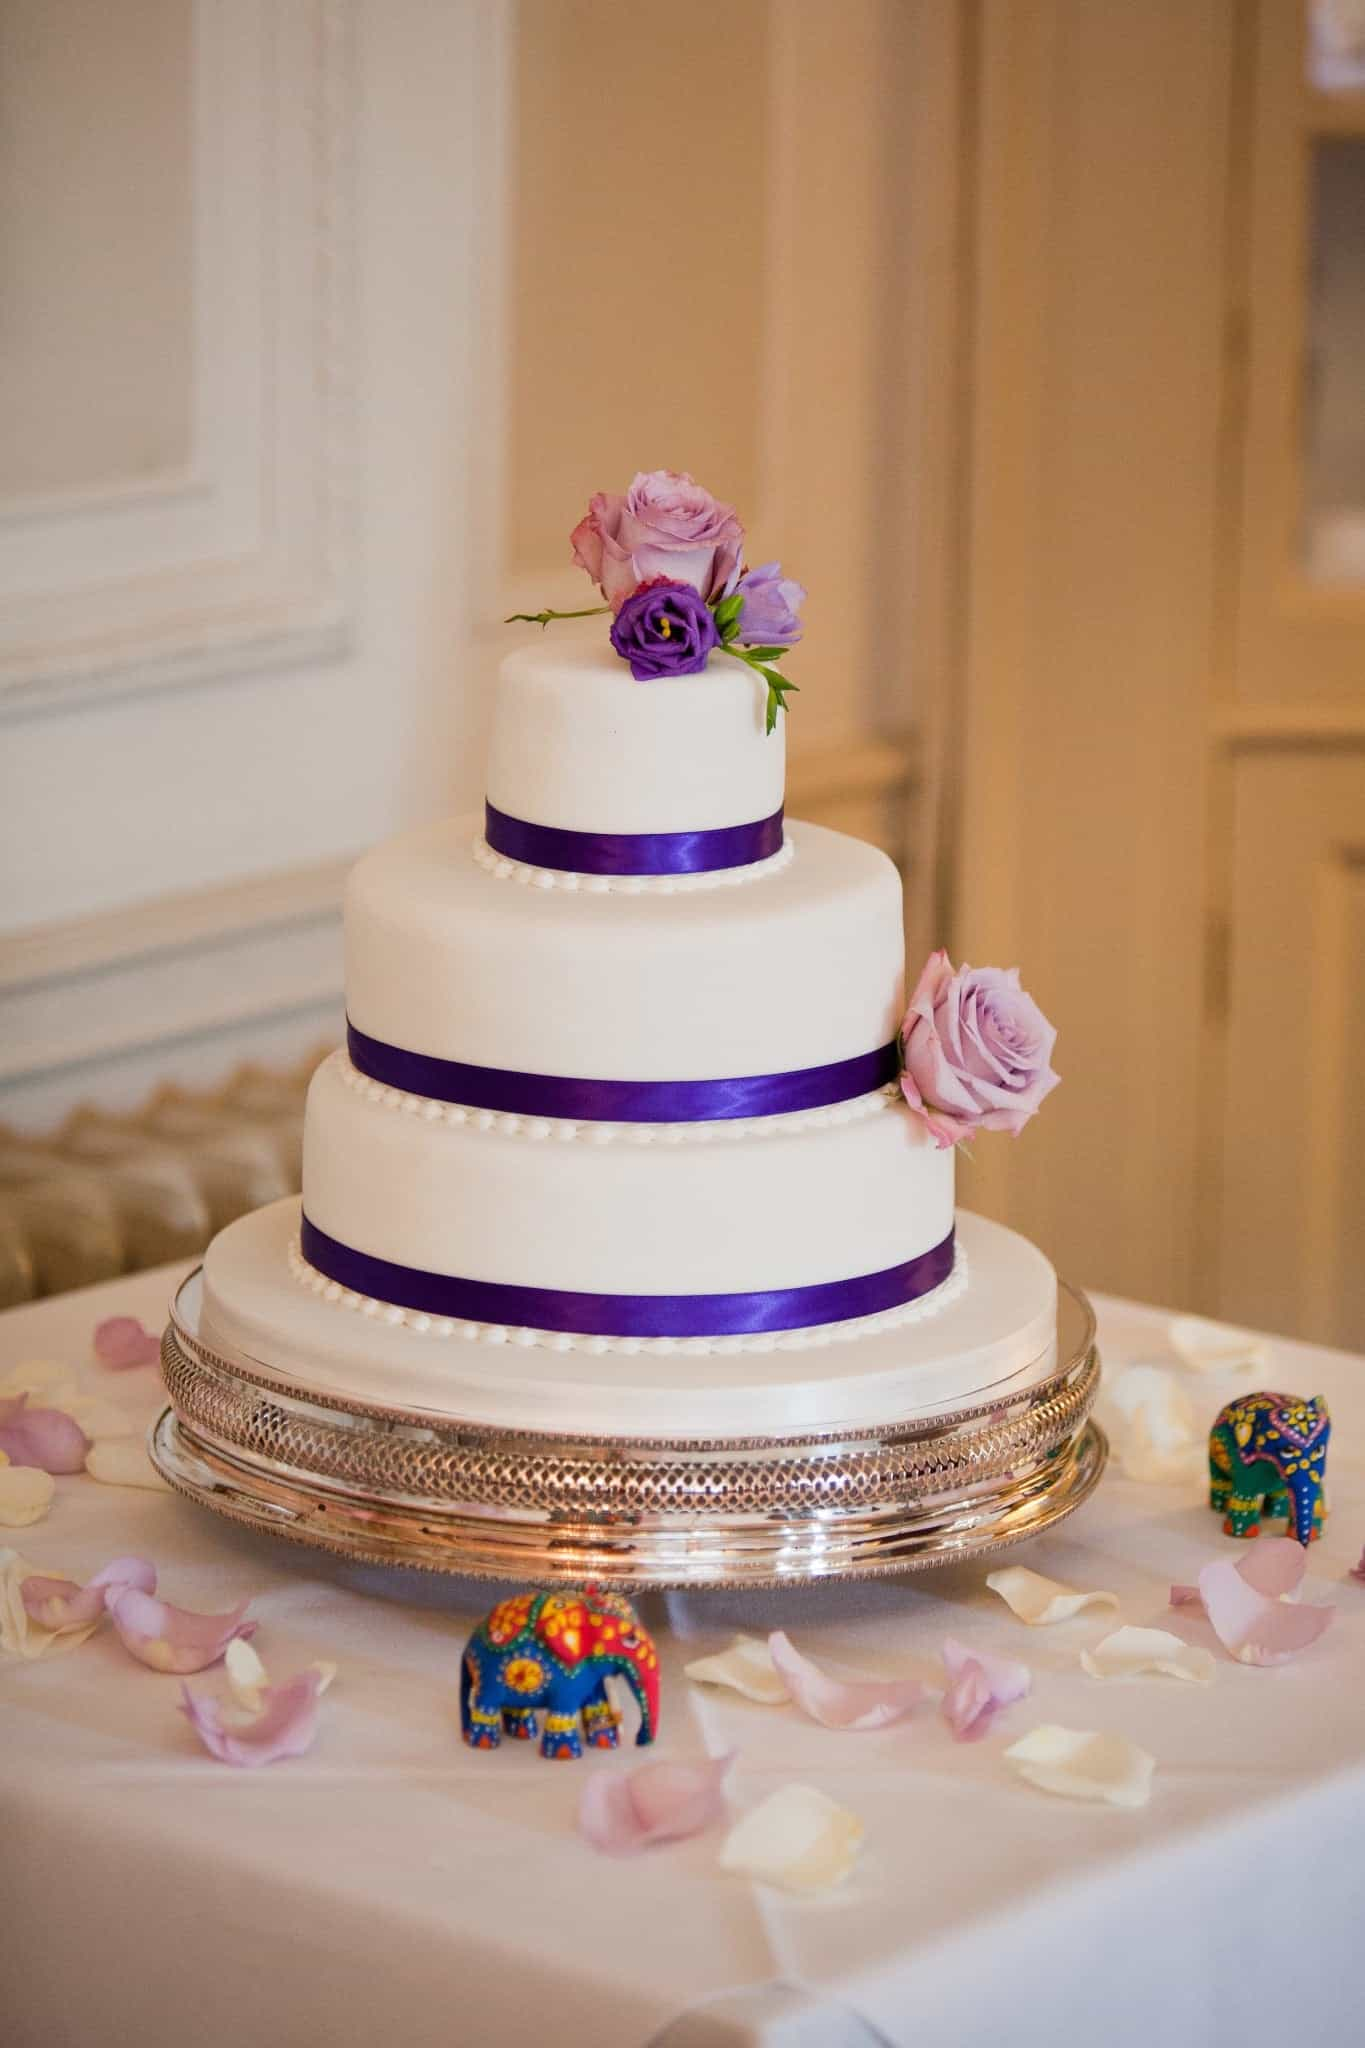 Classic Wedding Cake Enhanced With Delicate Fresh Flowers (Image 9 of 16)